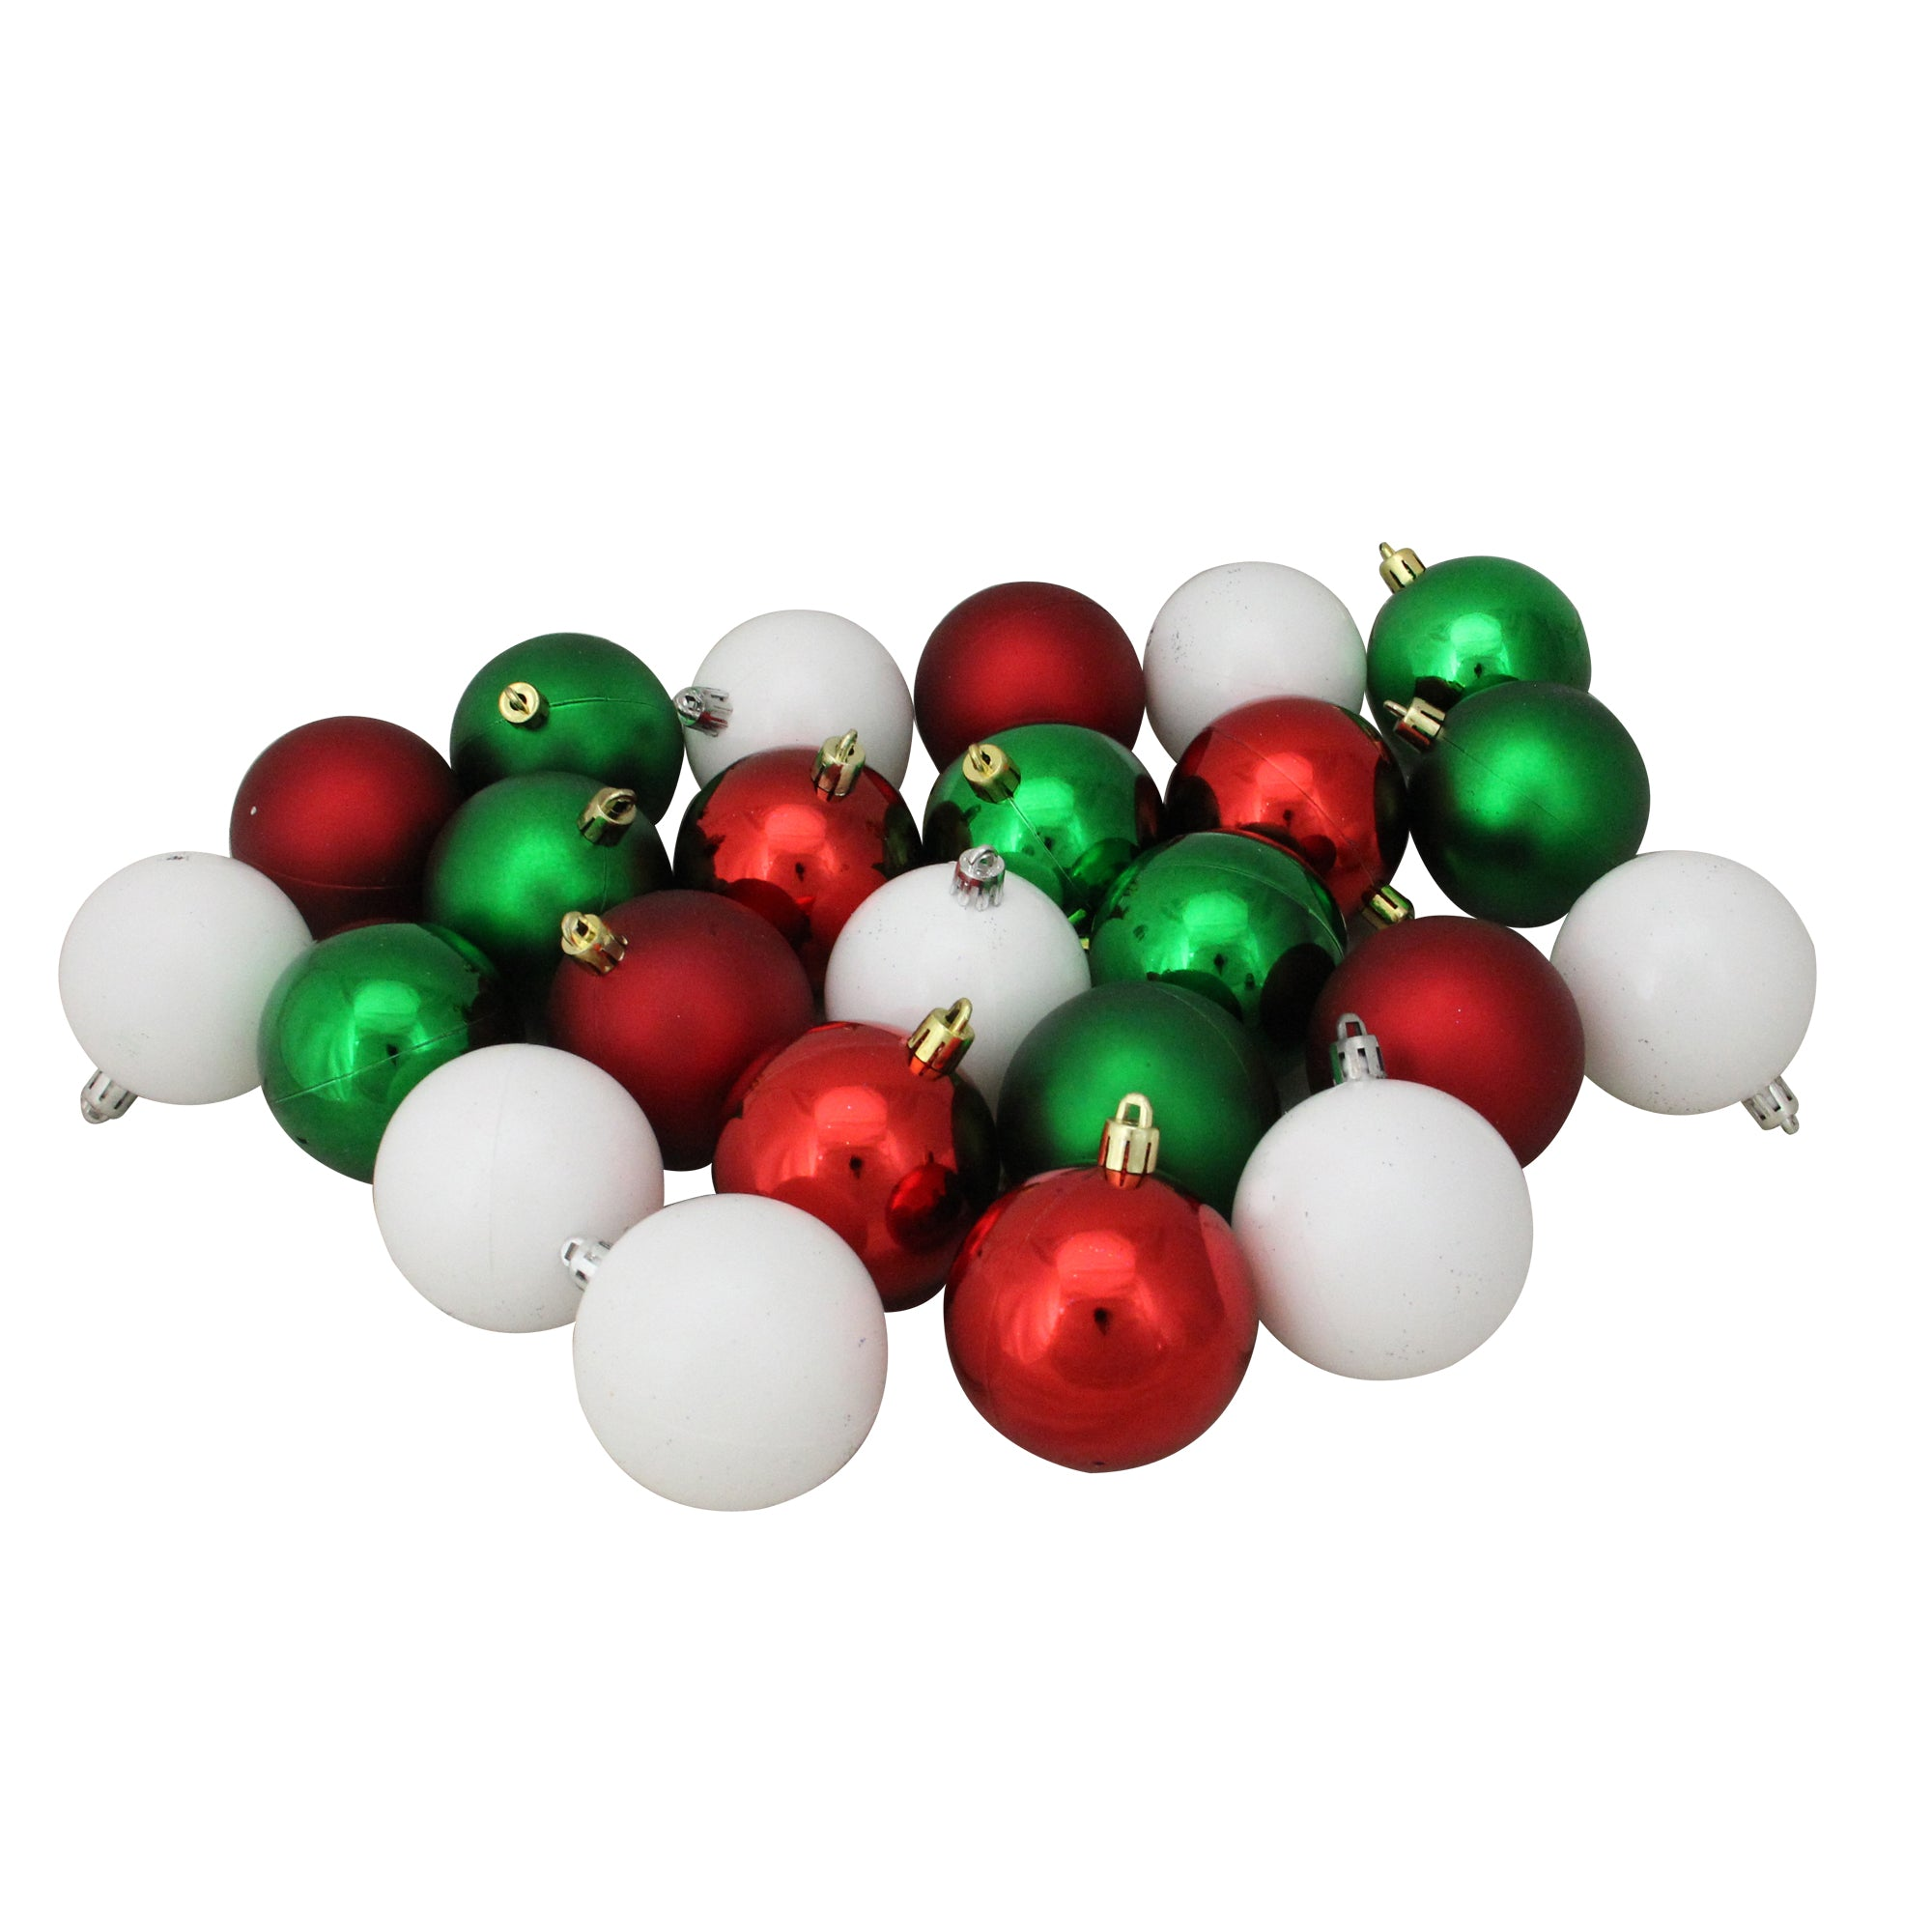 Red Christmas Ball Ornaments.24ct Red And Green Shatterproof 2 Finish Christmas Ball Ornaments 2 5